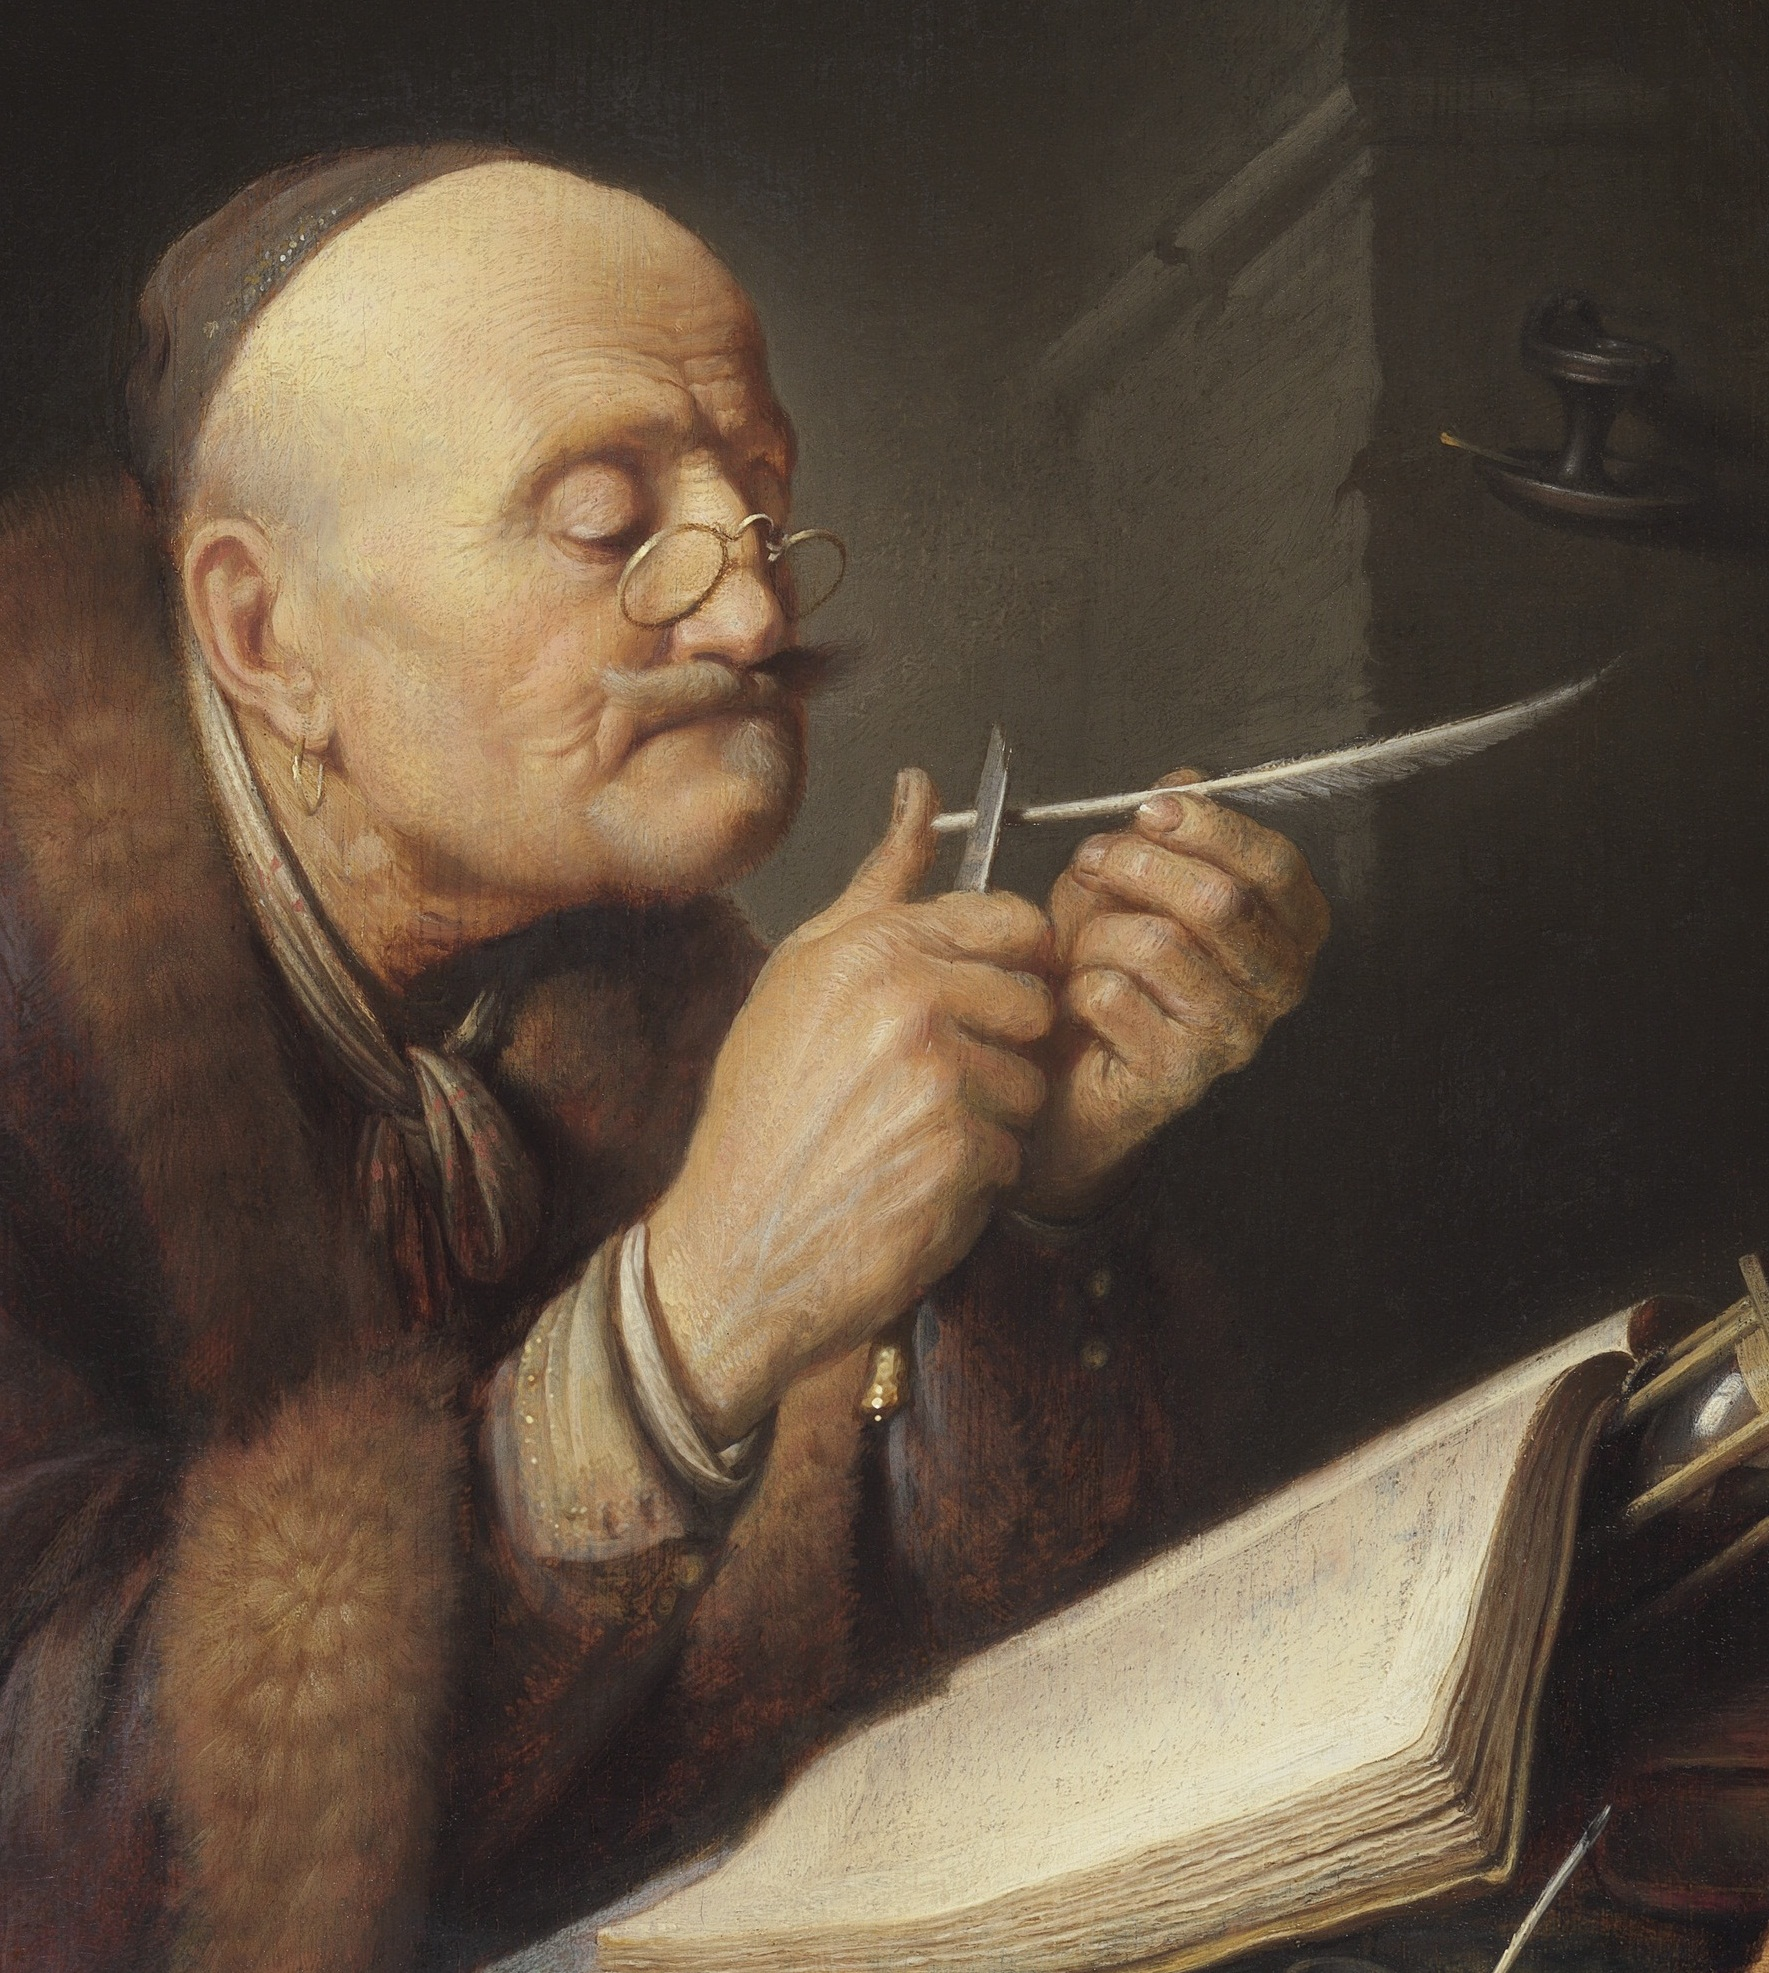 https://upload.wikimedia.org/wikipedia/commons/0/08/Gerrit_Dou_-_Scholar_sharpening_a_quill_pen.jpg